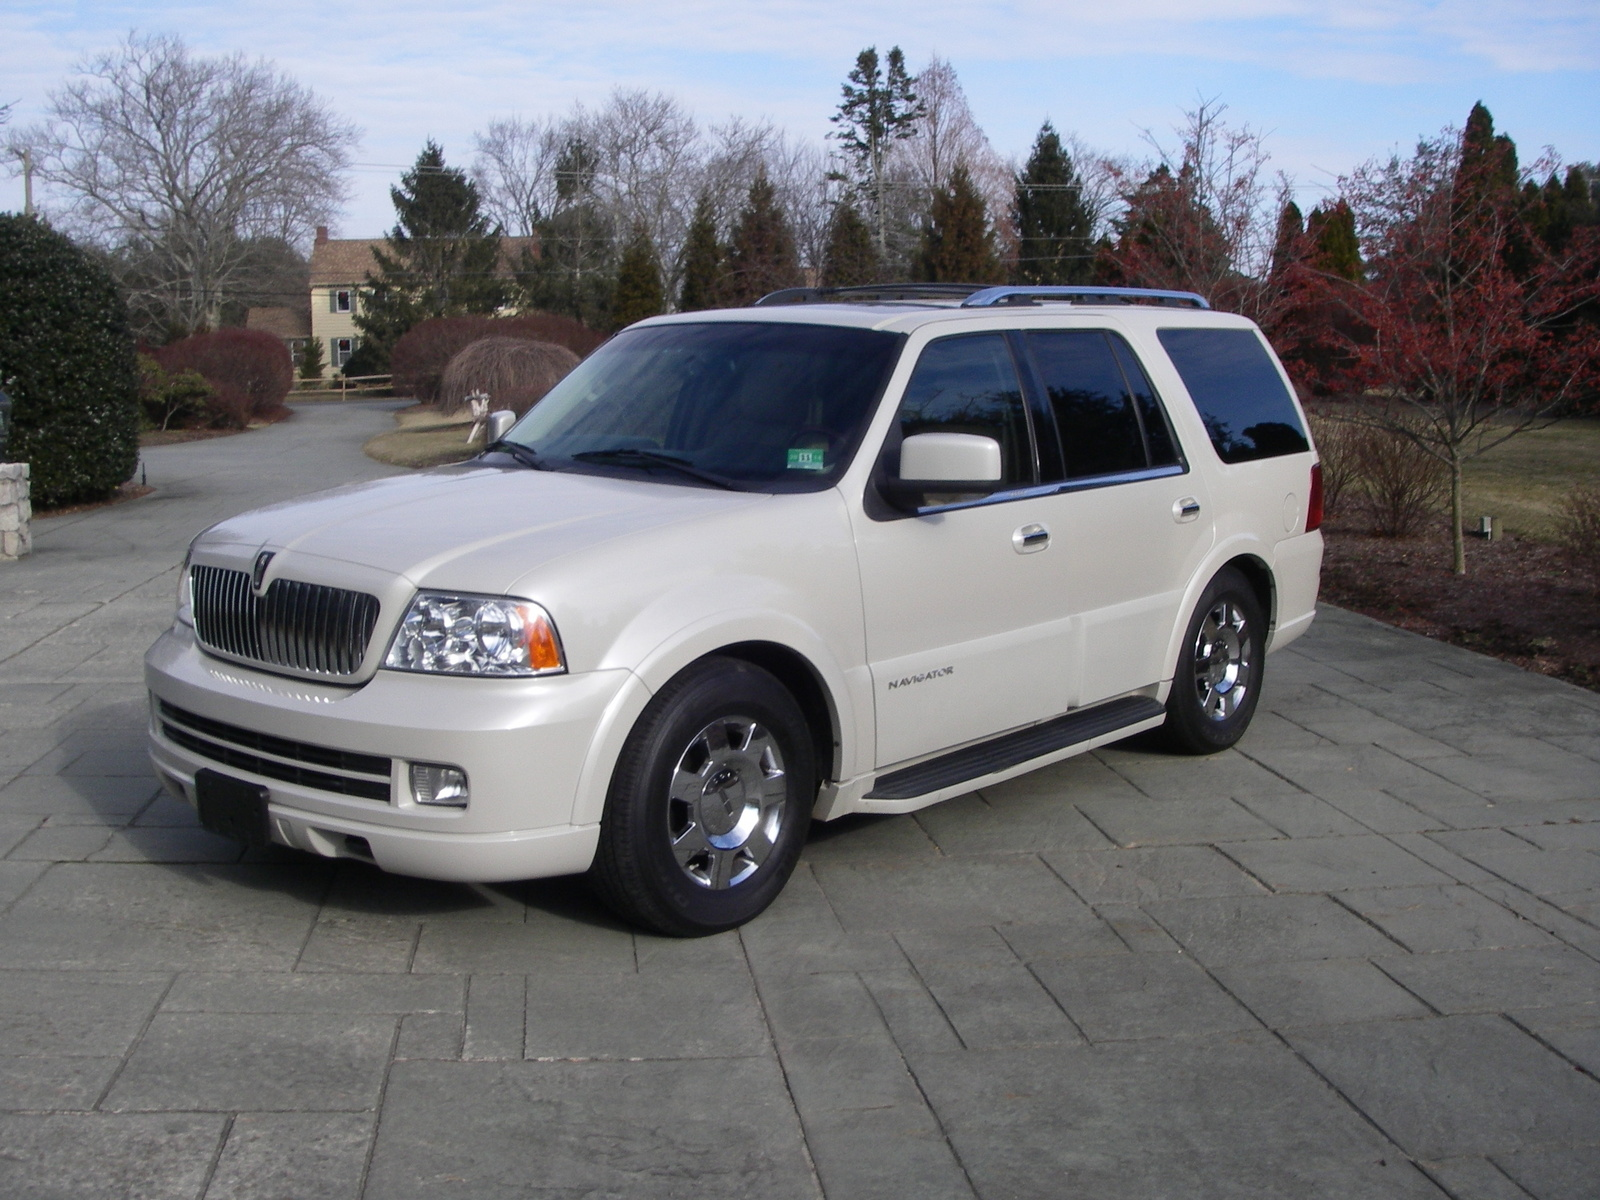 Graduation Hairstyles further 2001 Lincoln Continental Fuse Box Diagram moreover Nissan Frontier Power Window Wiring Diagram further 2005 Lincoln Navigator Pictures C2595 pi36546533 further Index2. on 2000 lincoln continental problems